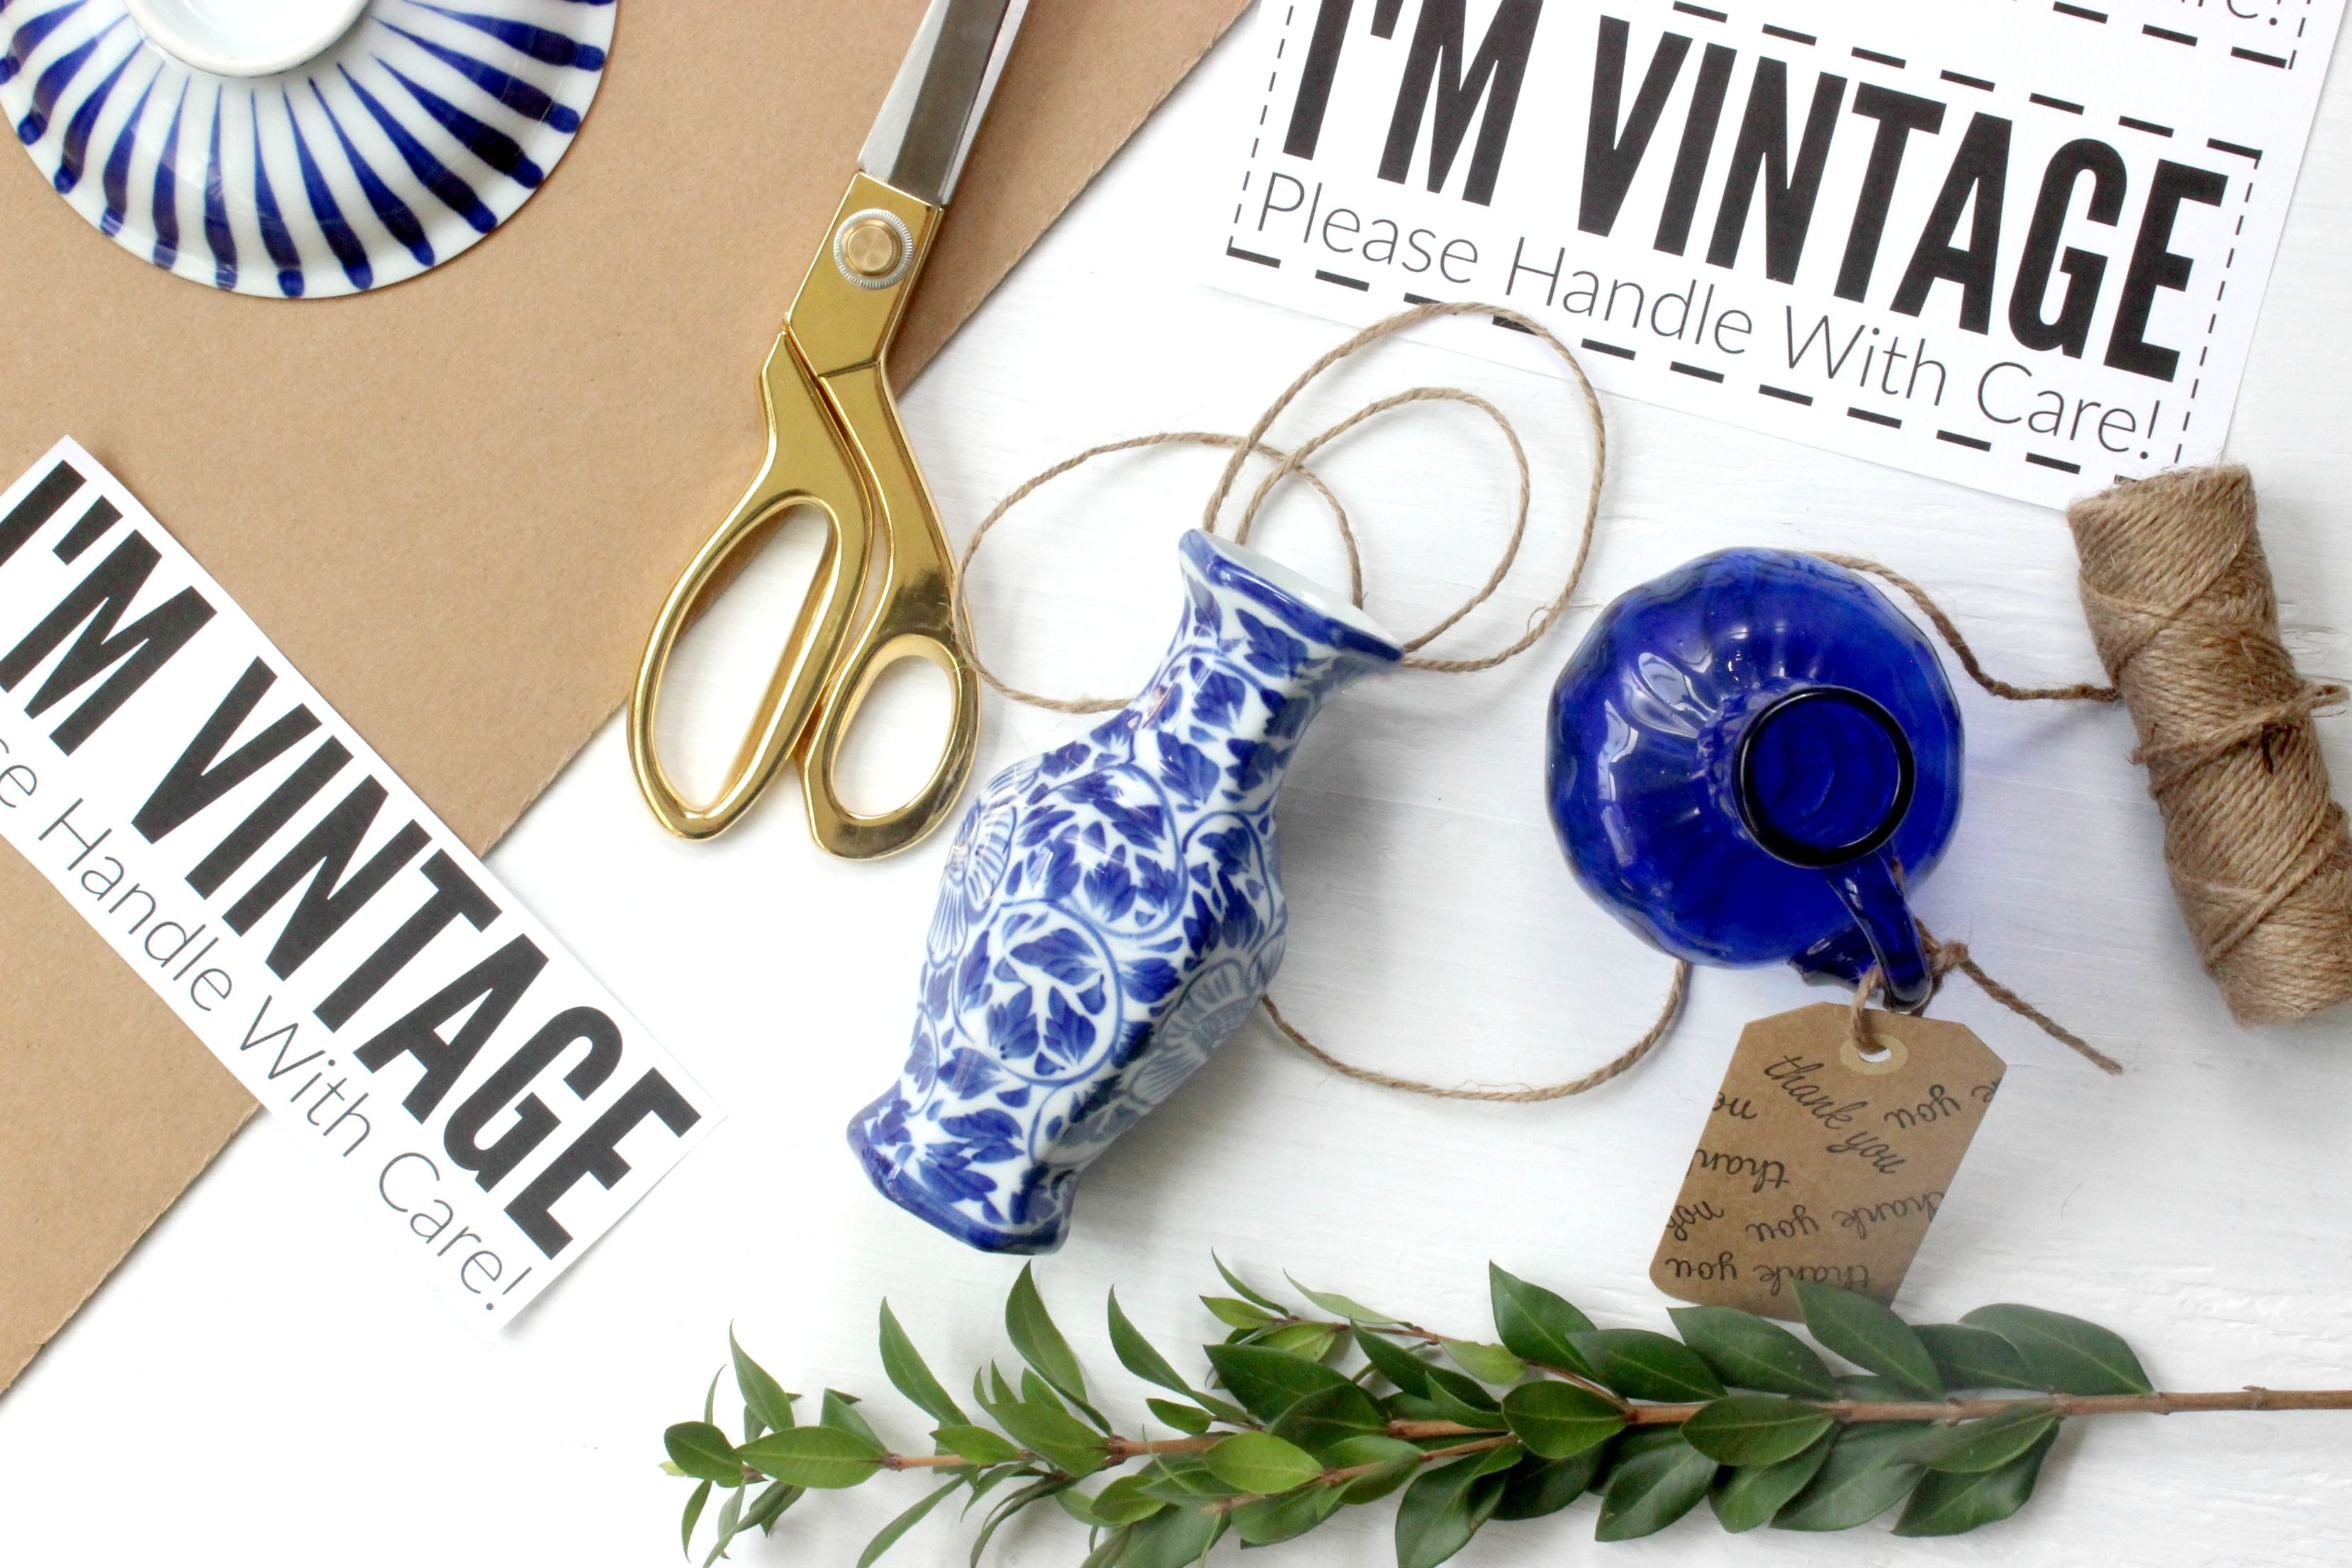 Tips For Shipping Vintage Items + A Free Printable! (With